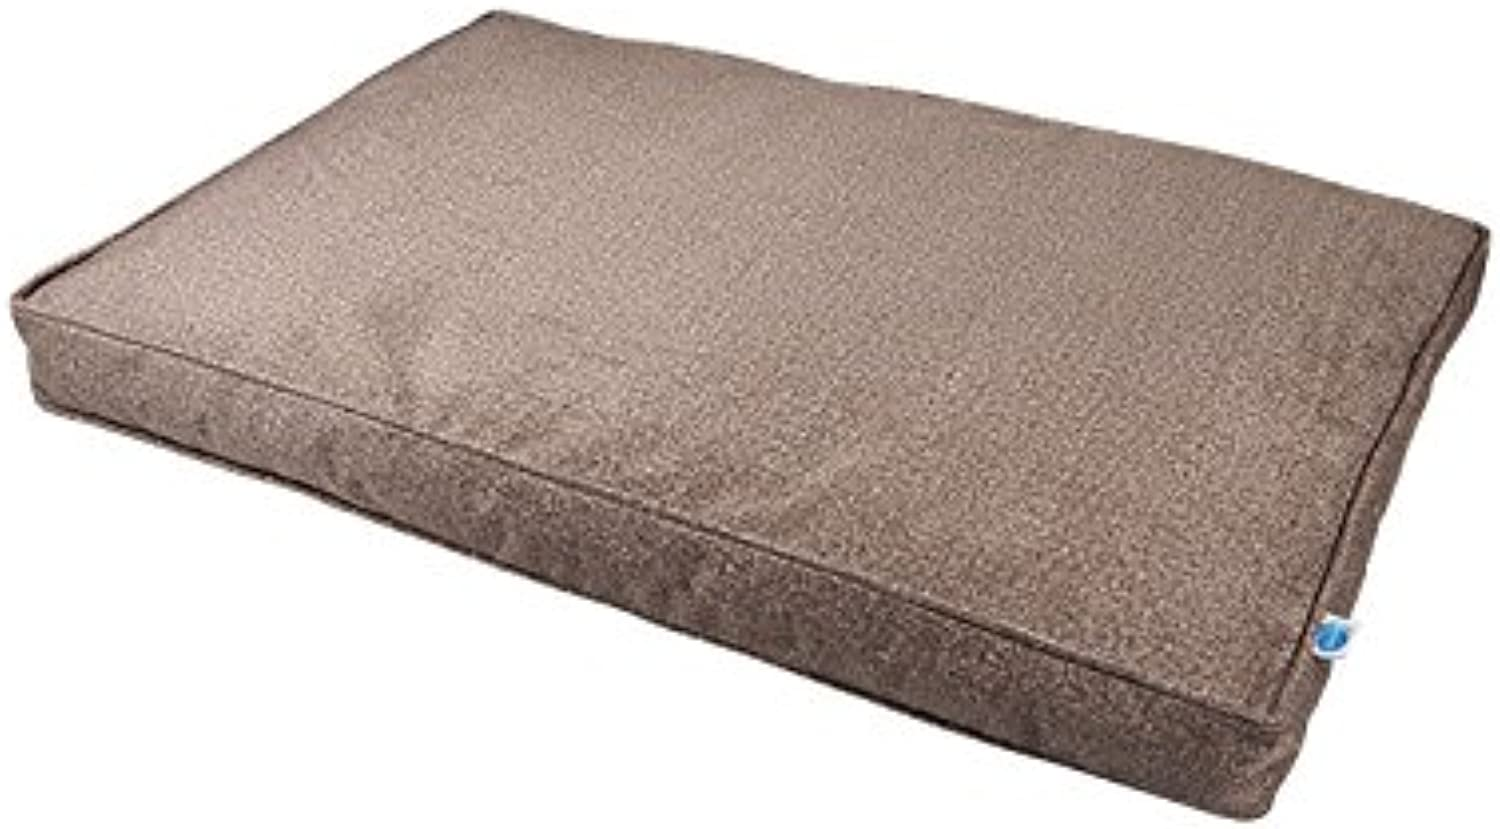 Messy Mutts Divine Flat Dog Bed with EVERFRESH Probiotic Technology for Natural, NonToxic Odor Control, Small